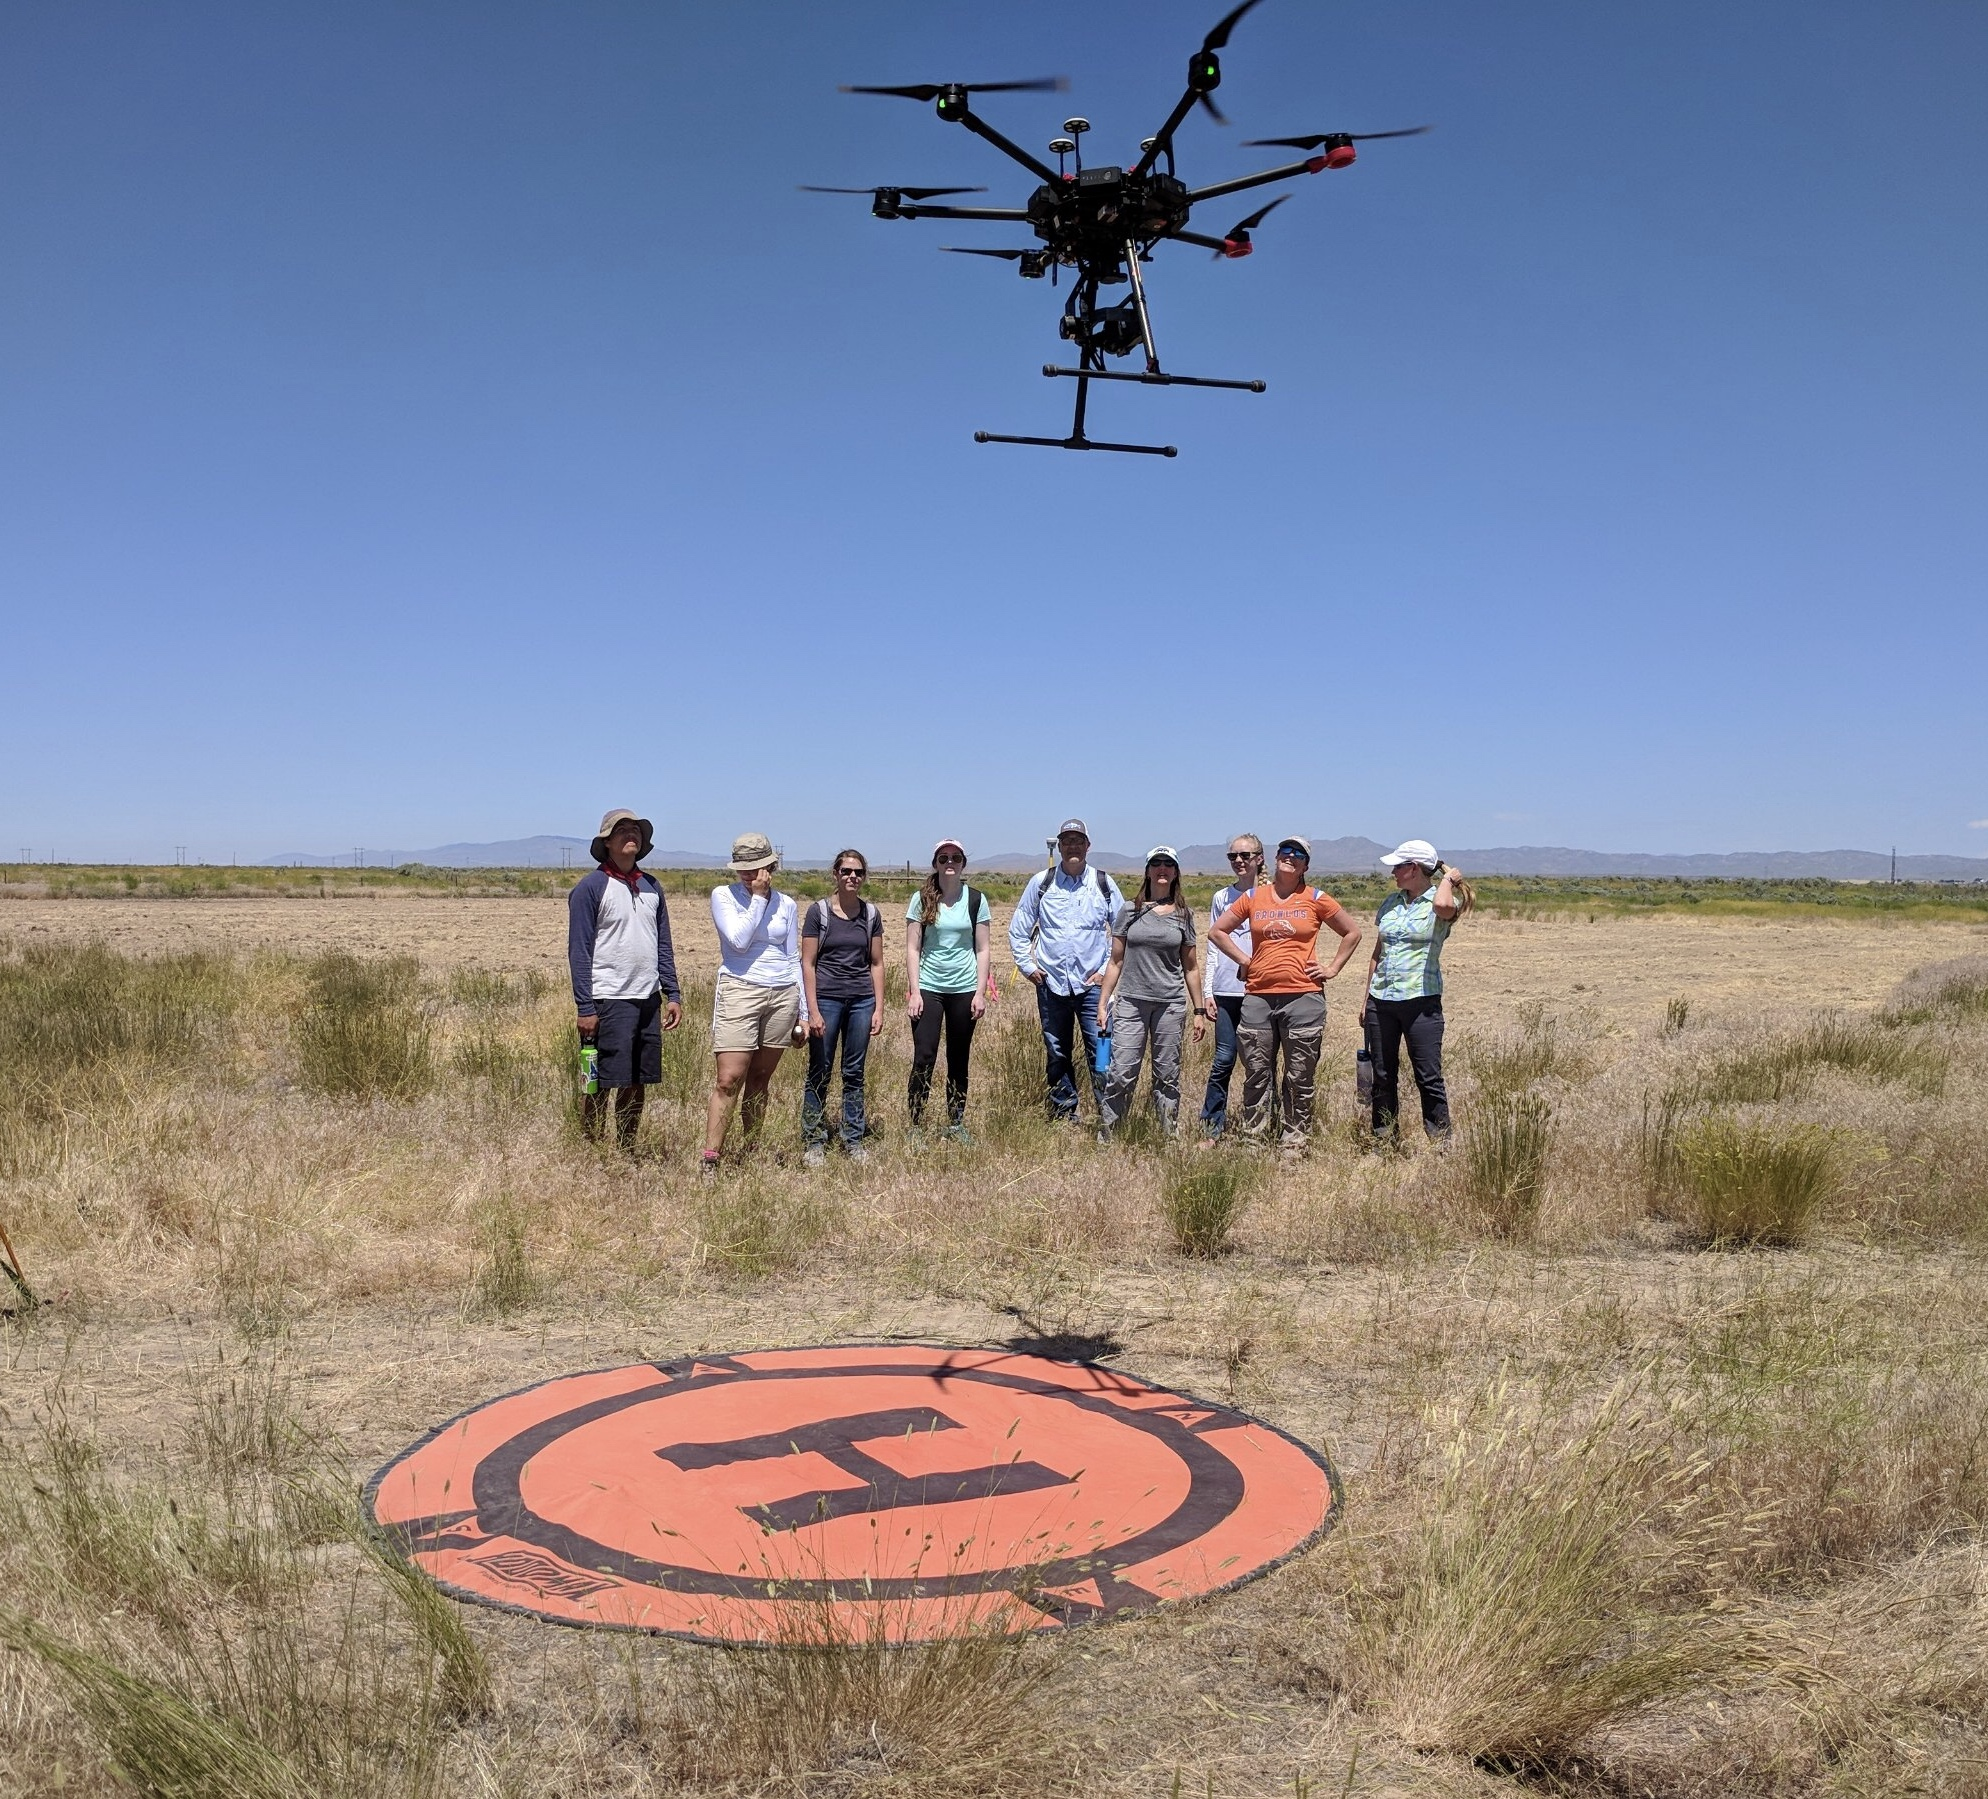 Group of people in rangeland watch drone ascend